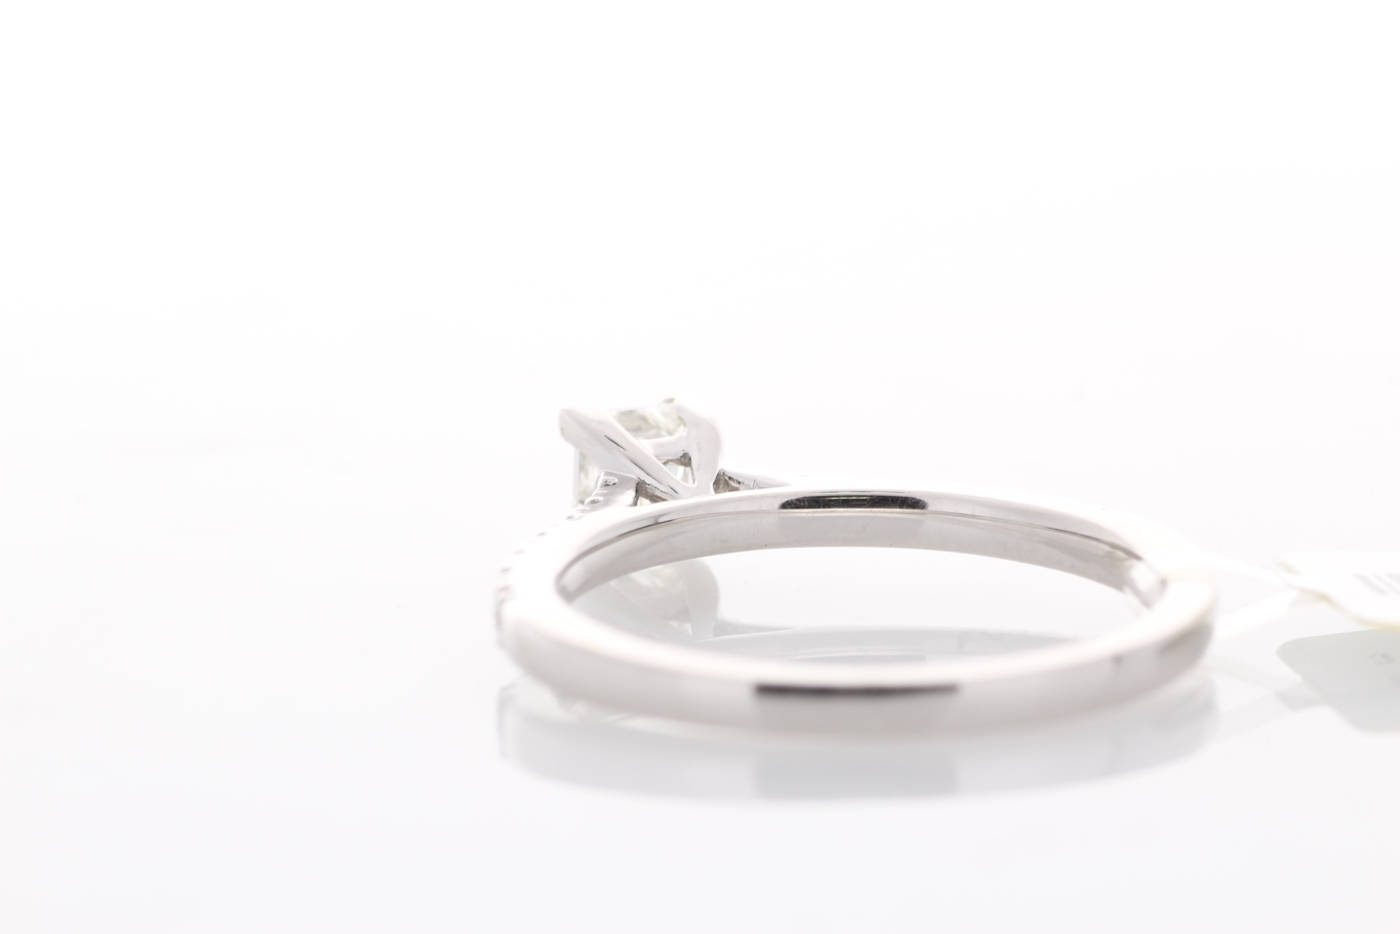 18ct White Gold Stone Set Shoulders Diamond Ring 0.61 Carats - Image 5 of 5